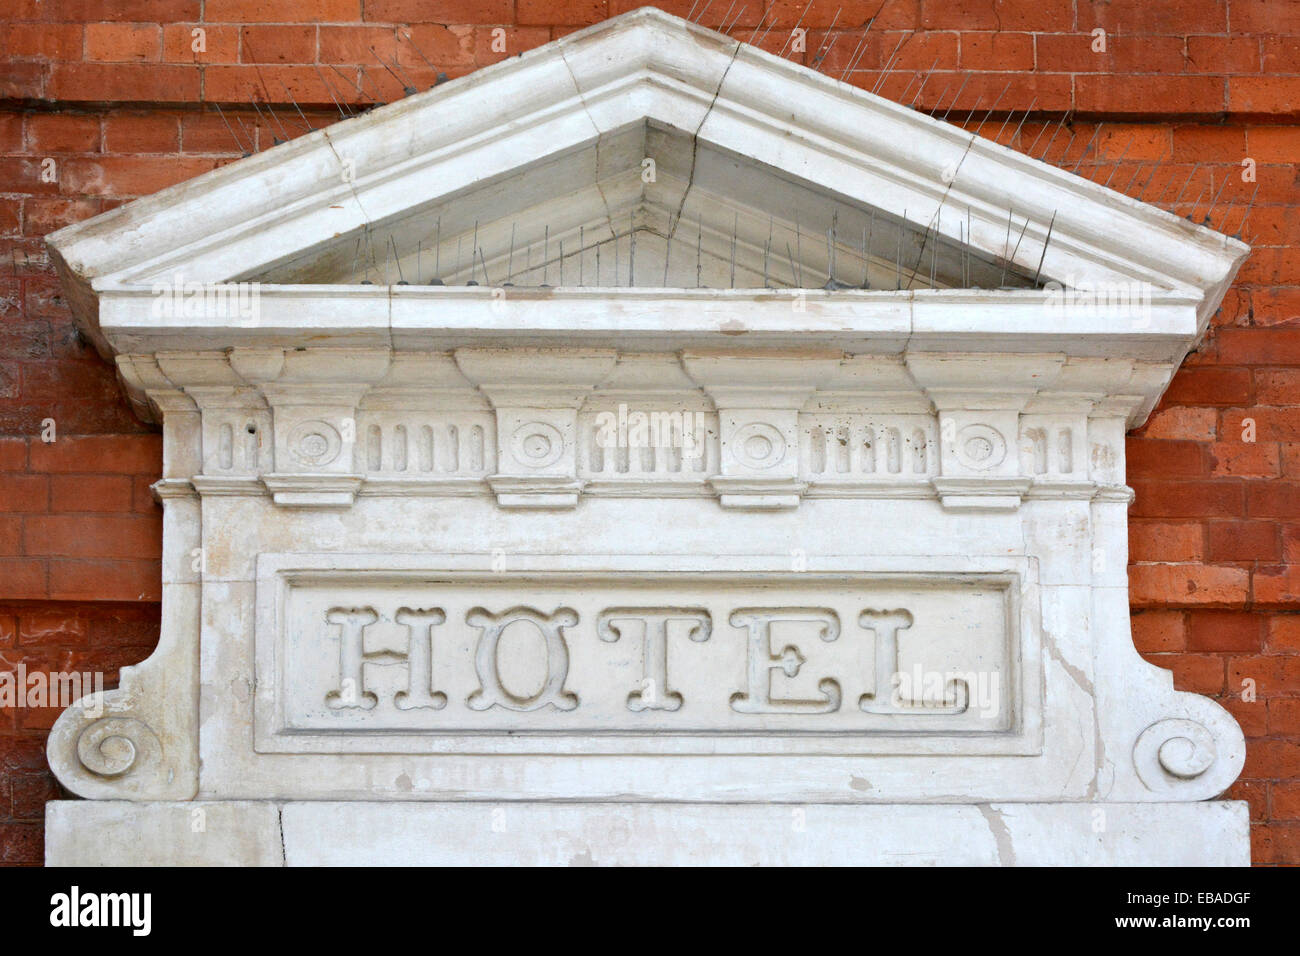 The word Hotel carved into an old stone sign mounted on a brick wall with bird scaring devices London England UK - Stock Image